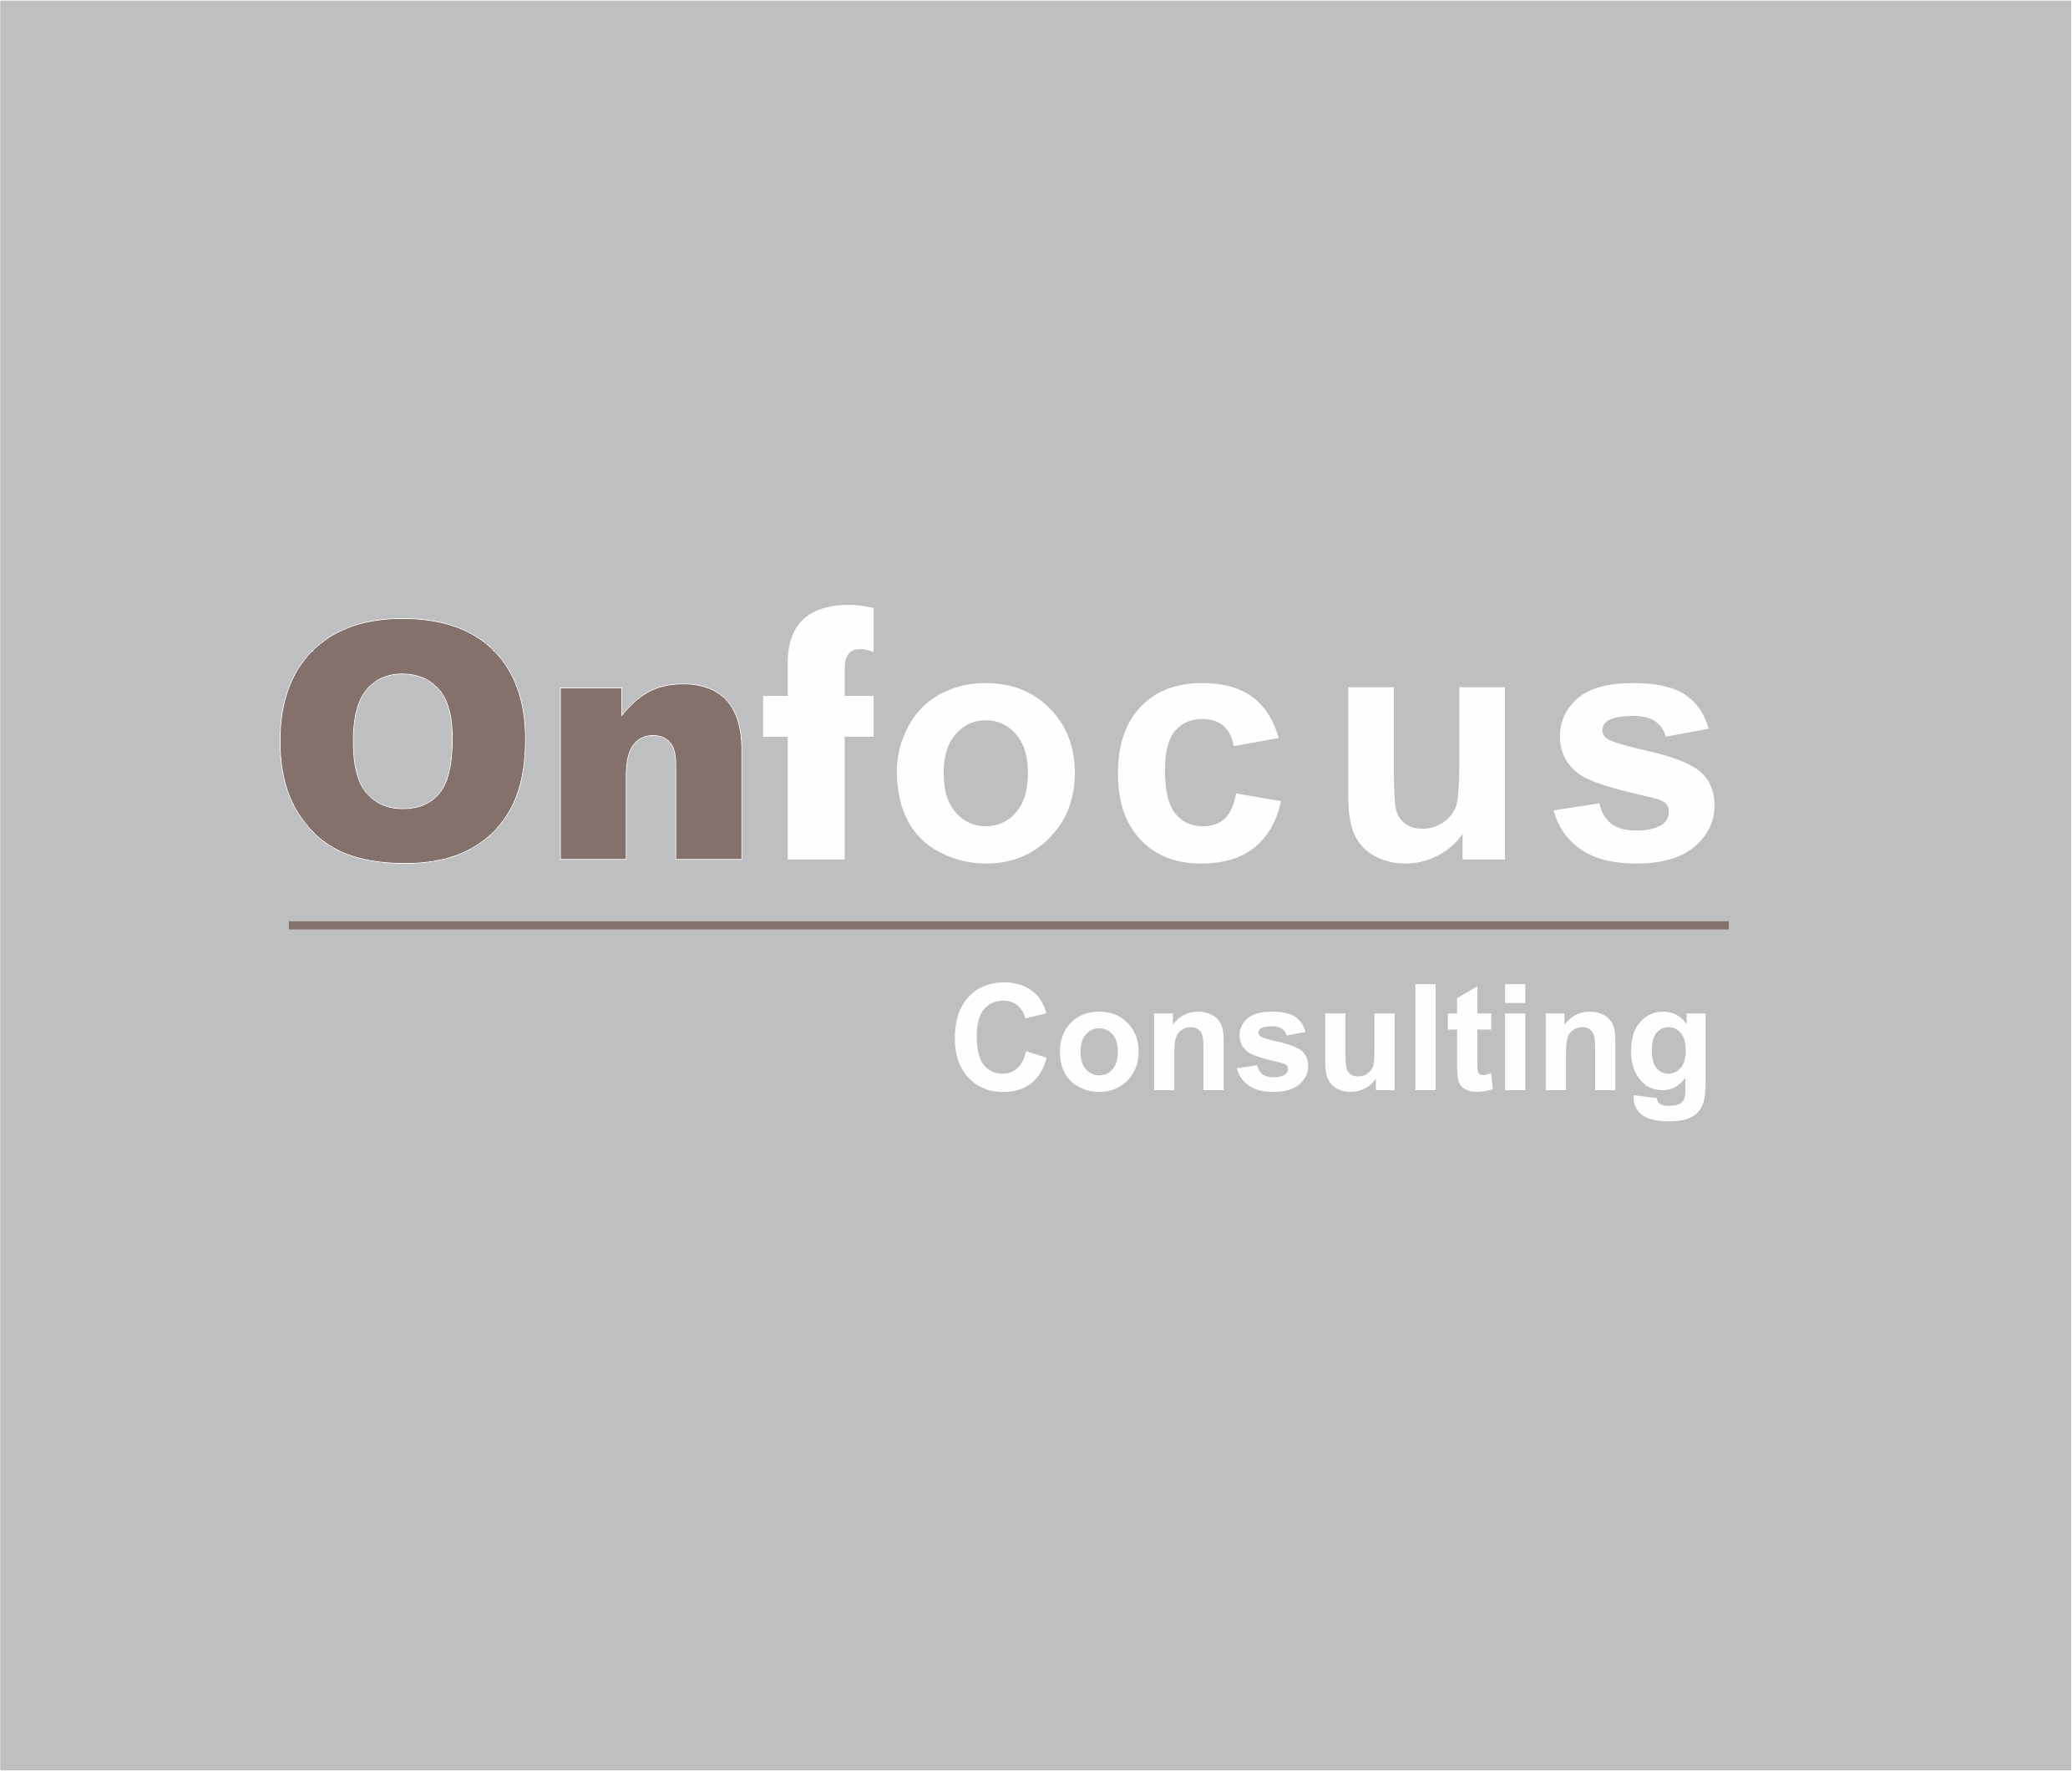 ON FOCUS CONSULTING